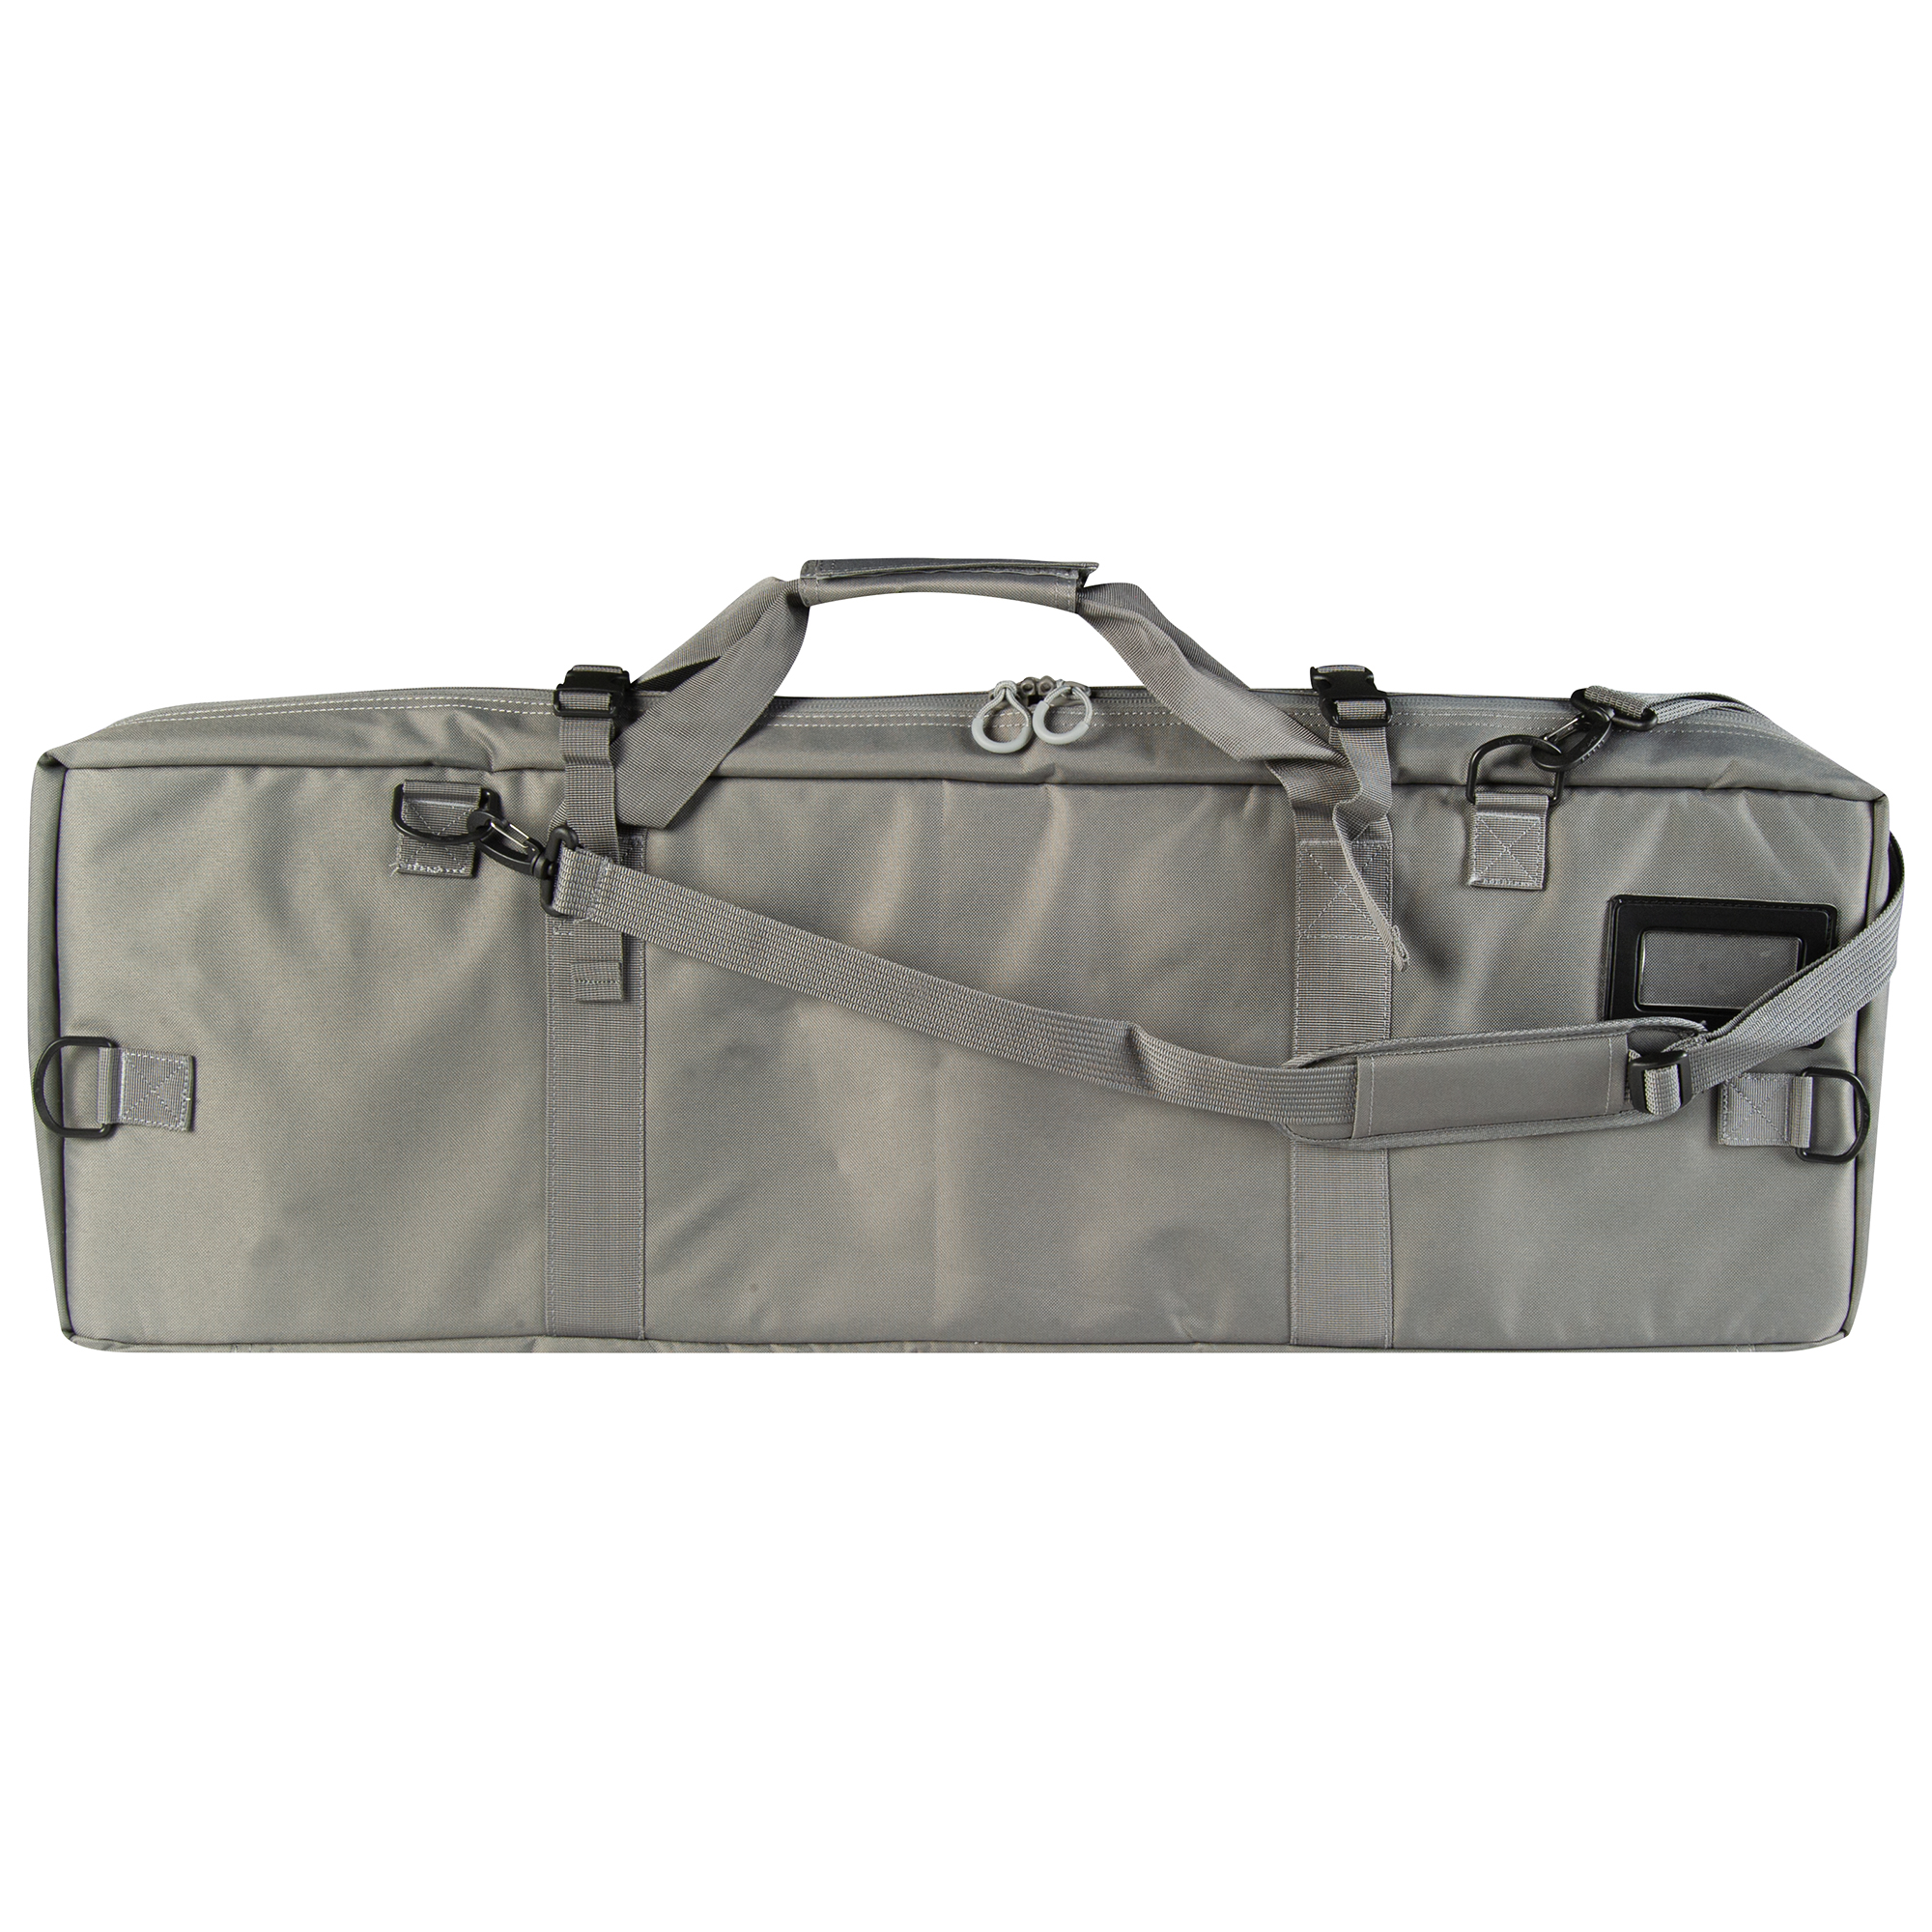 Triton Tactical 2nd Amendment Rifle Case thumbnail